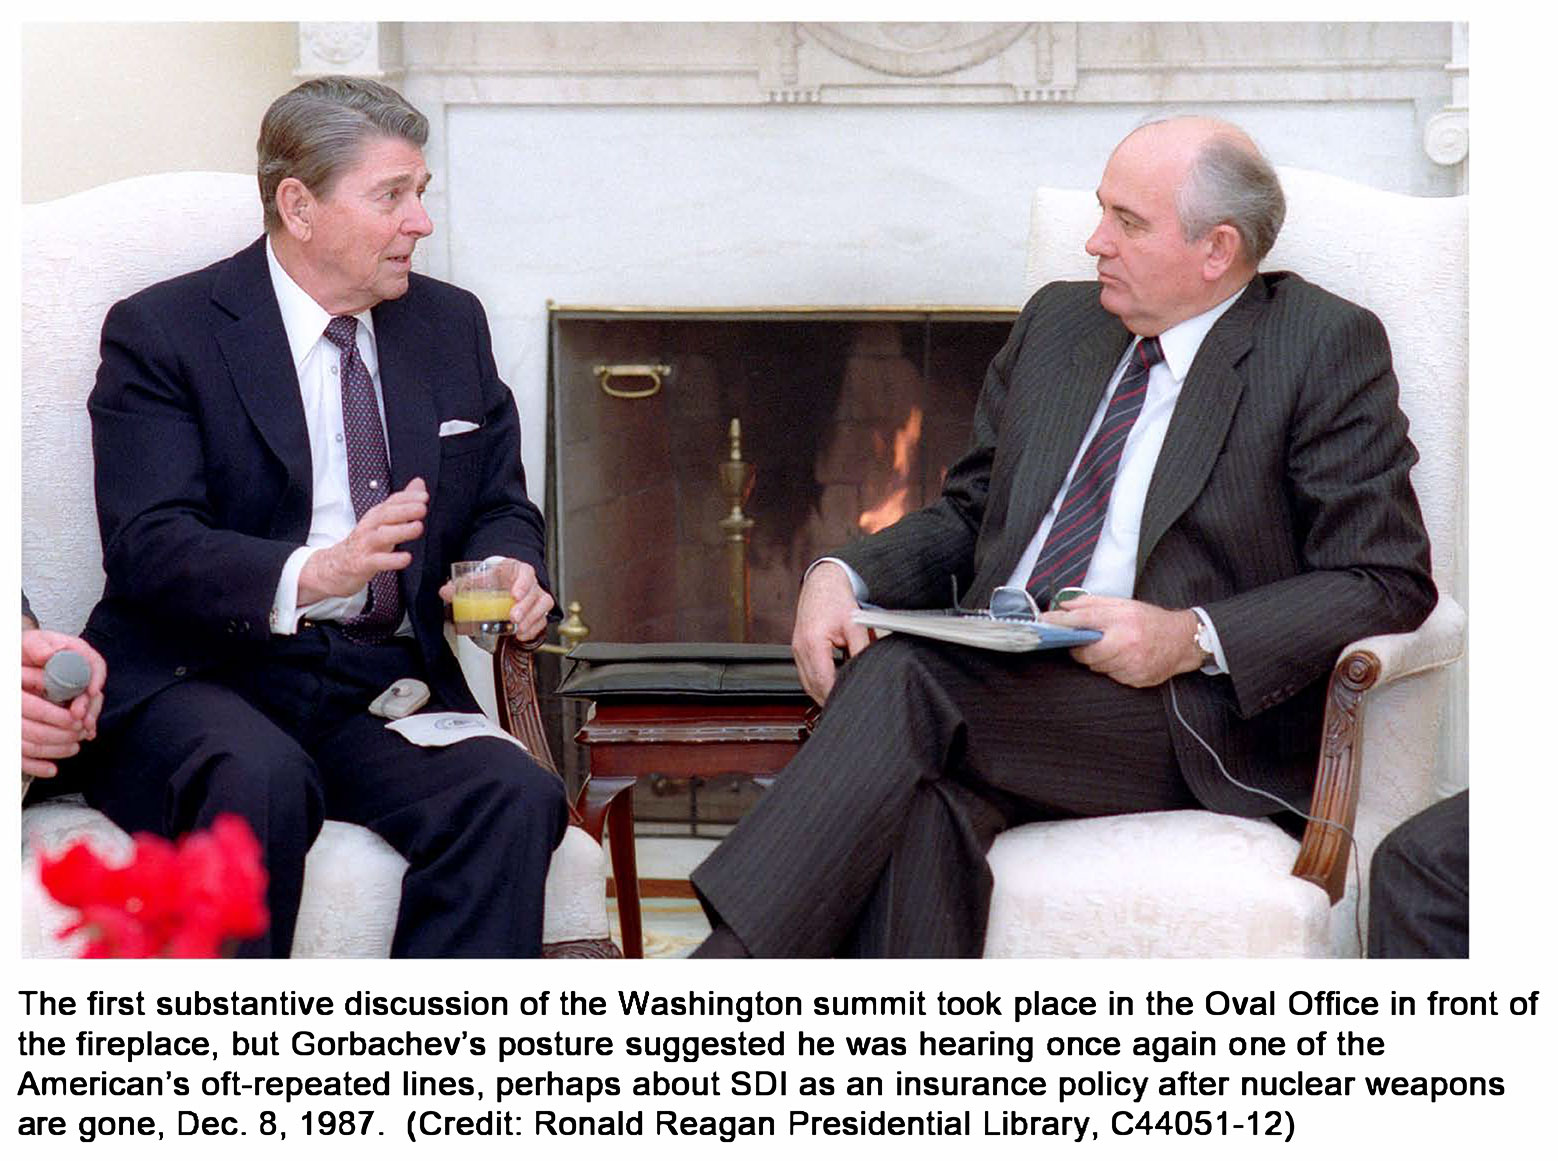 The first substantive                                         discussion of the Washington                                         summit took place in the Oval                                         Oftice in front of the                                         fireplace, but Gorbachev's                                         posture suggested he was hearing                                         опсе again опе of the American's                                         oft-repeated lines, perhaps                                         about 501 as ап insurance policy                                         after nuclear weapons аге gone,                                         Dес. 8, 1987.